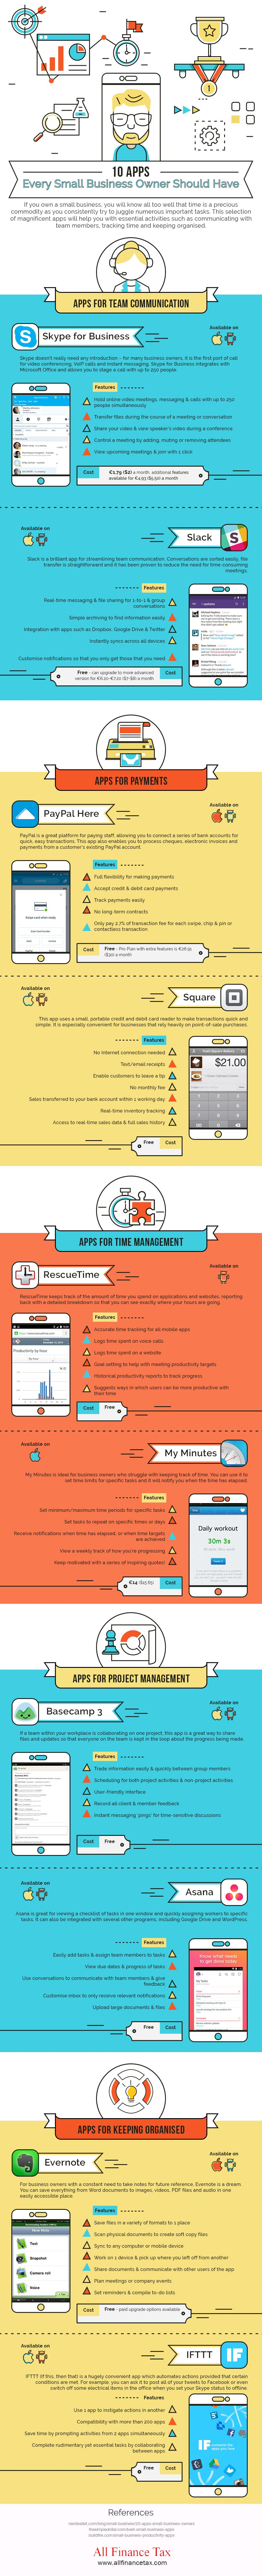 10 Apps Every Small Business Owner Should Have - Infographic